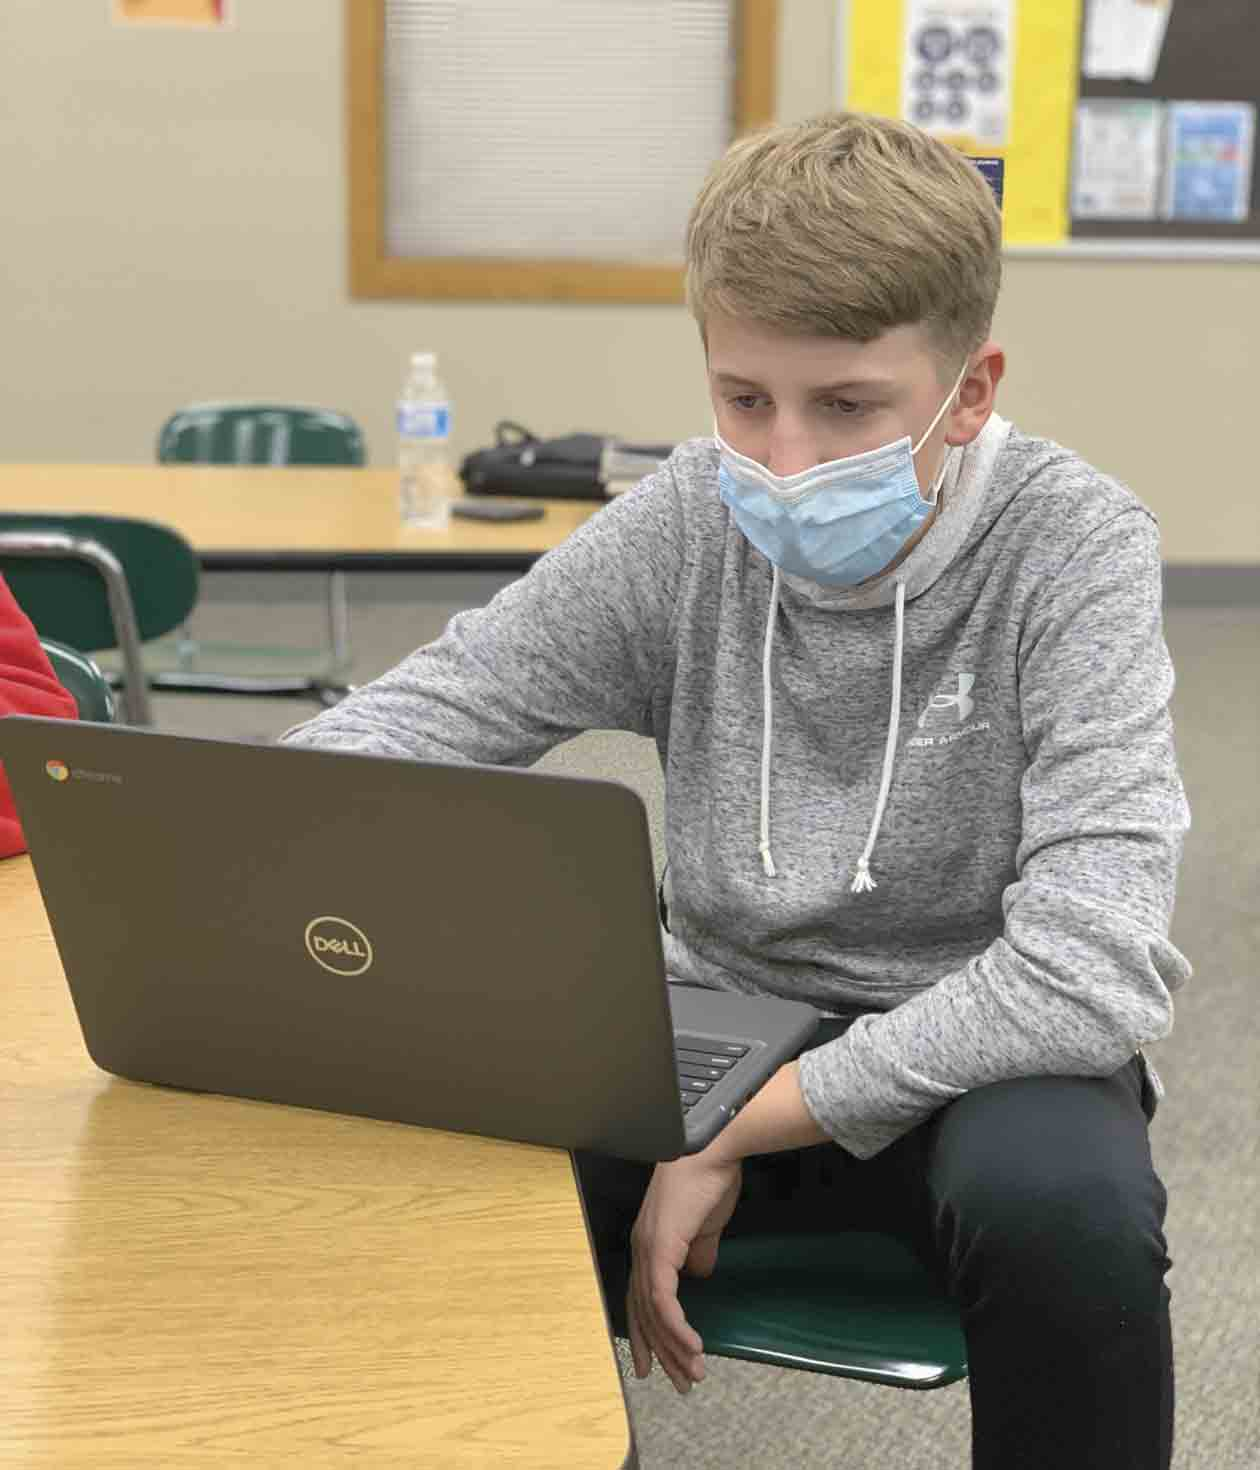 South Winneshiek freshman Eric Kriener works on an assignment during a study hall period. While Kriener is one of the face-to-face learners at the school, others students are learning in different ways this year as the school is providing teaching methods through full-time online classes and for...